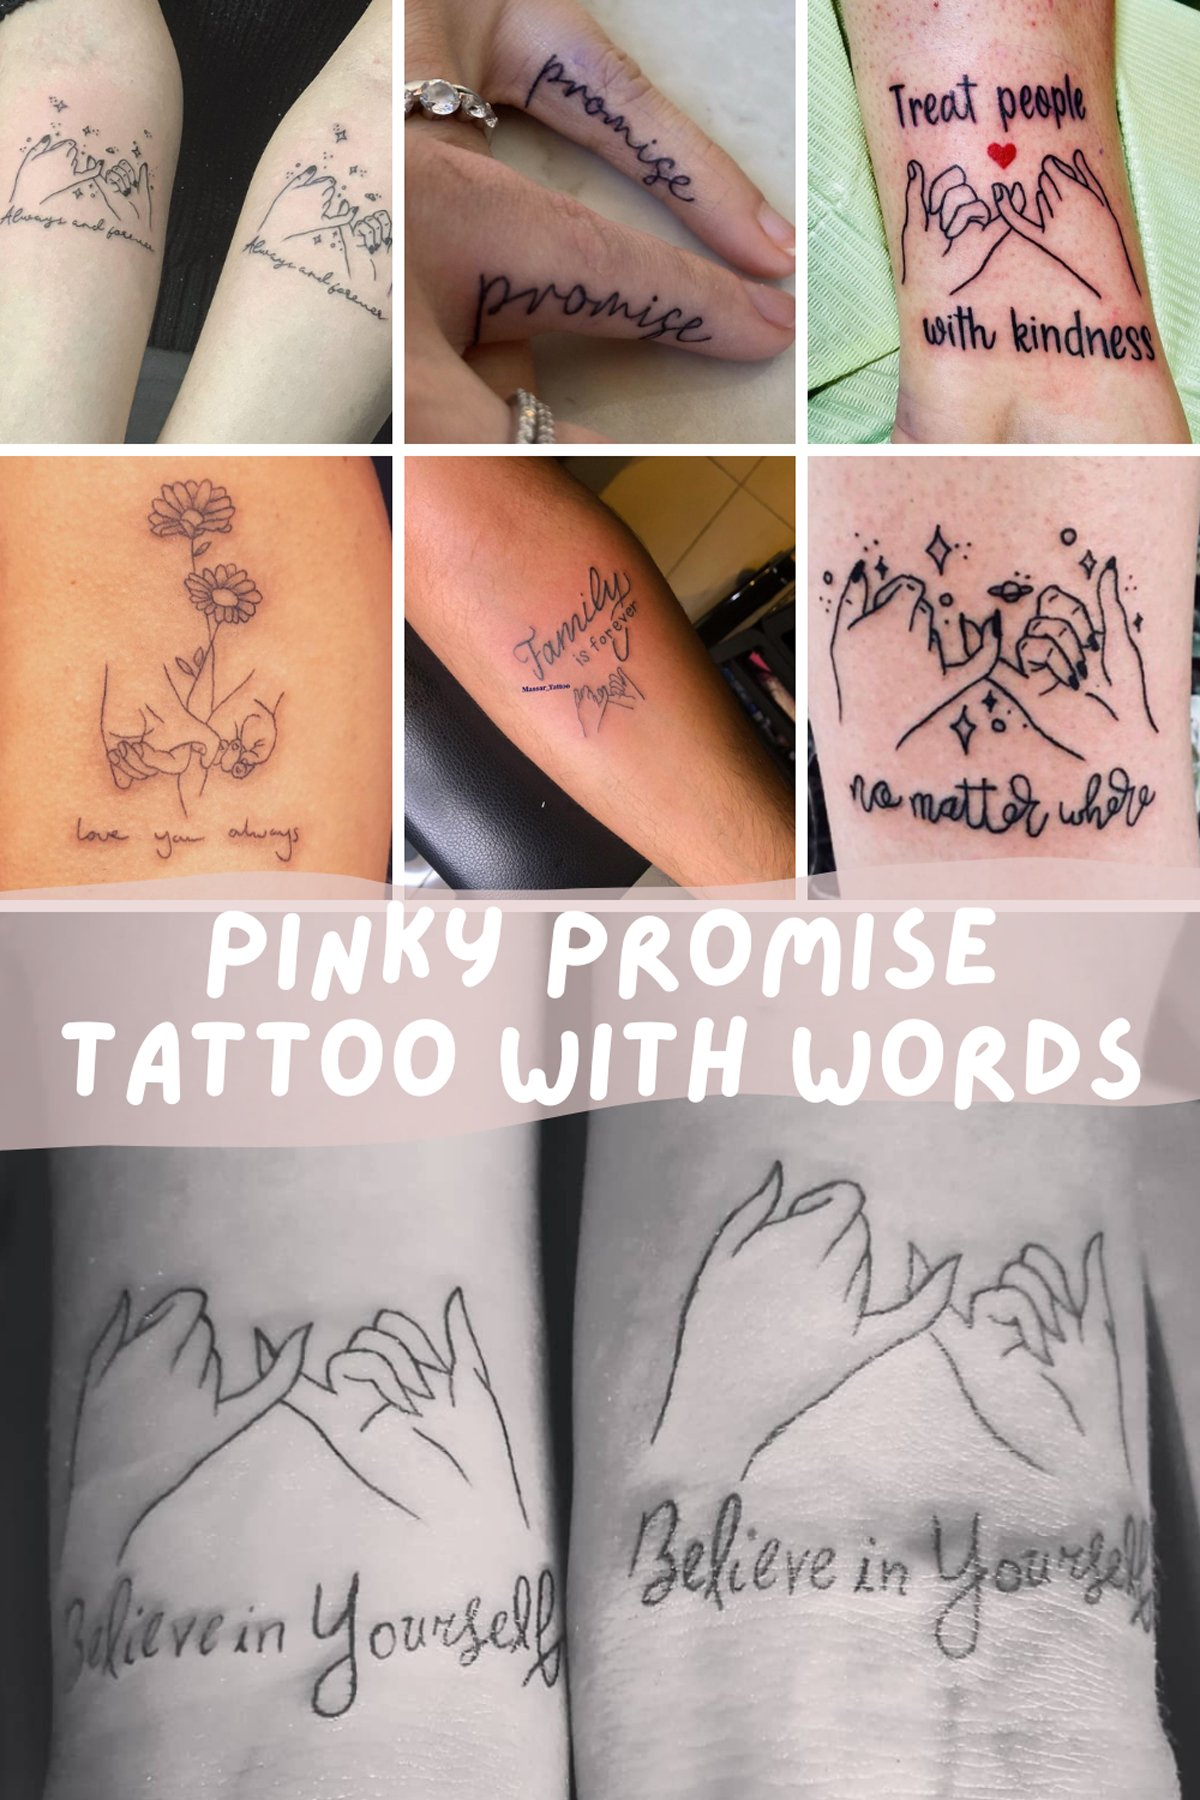 Pinky Promise Tattoo with Words